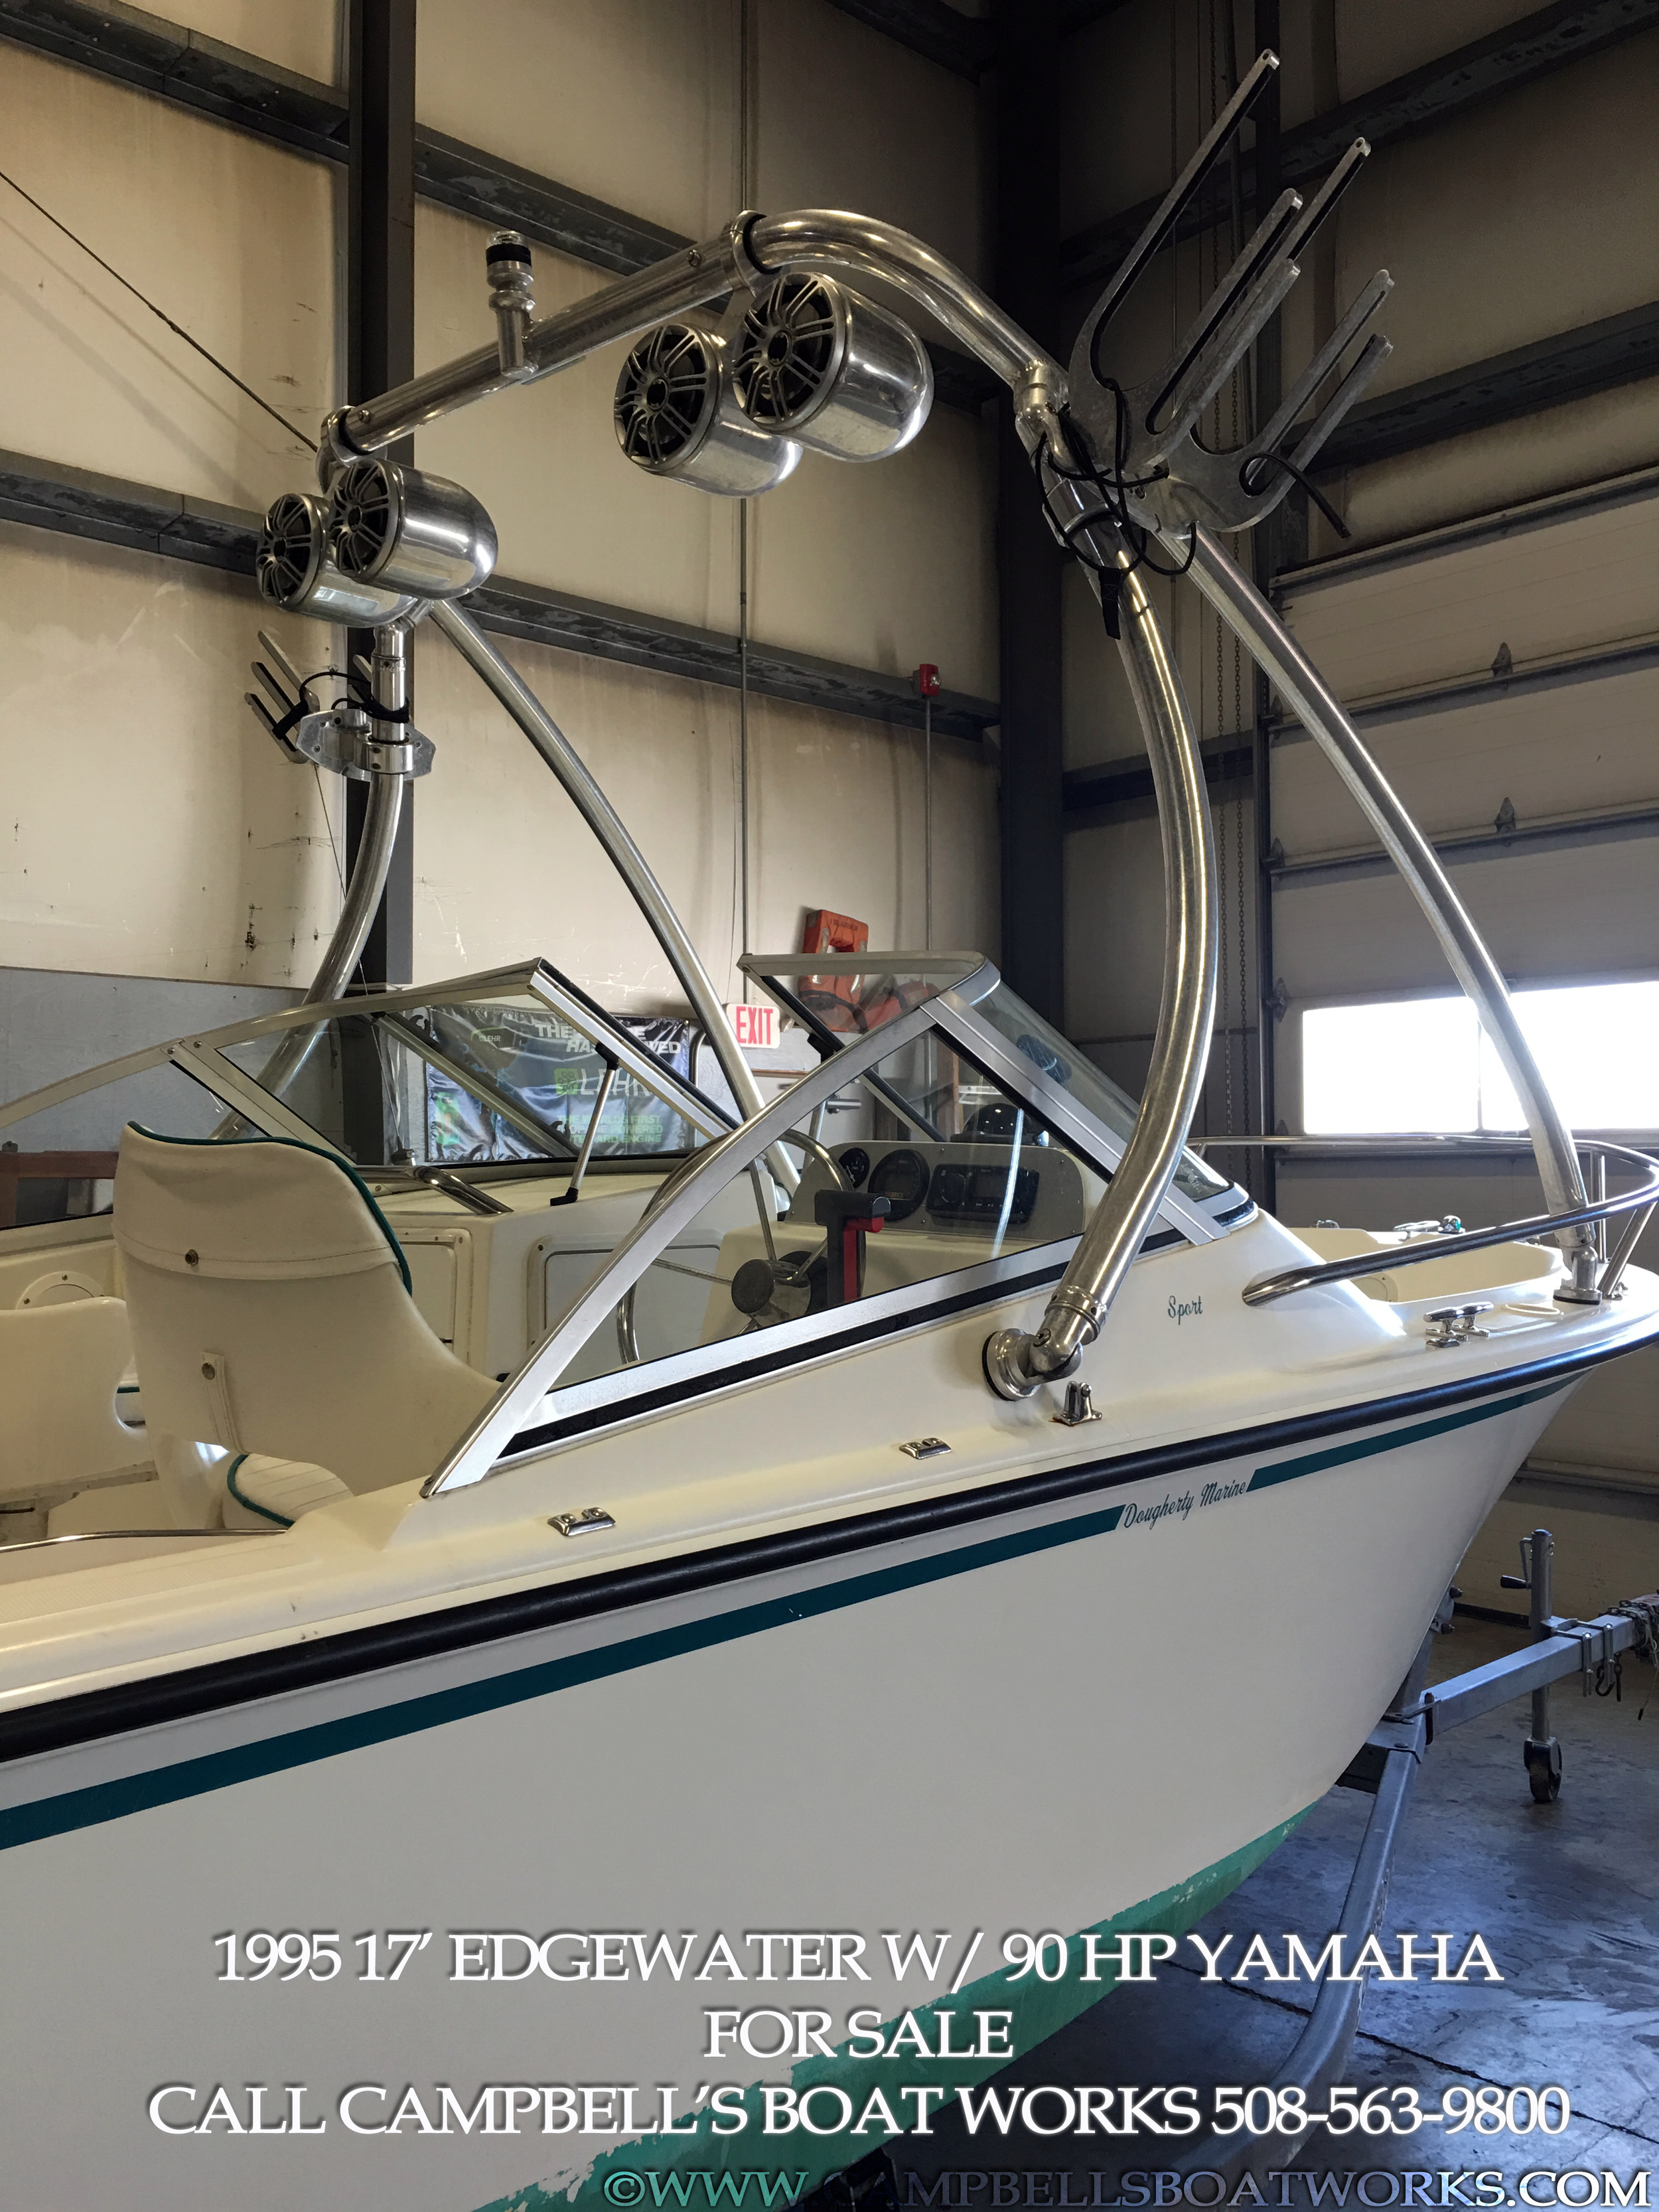 edgewater-17-sport-boat-for-sale-yamaha-outboard.png